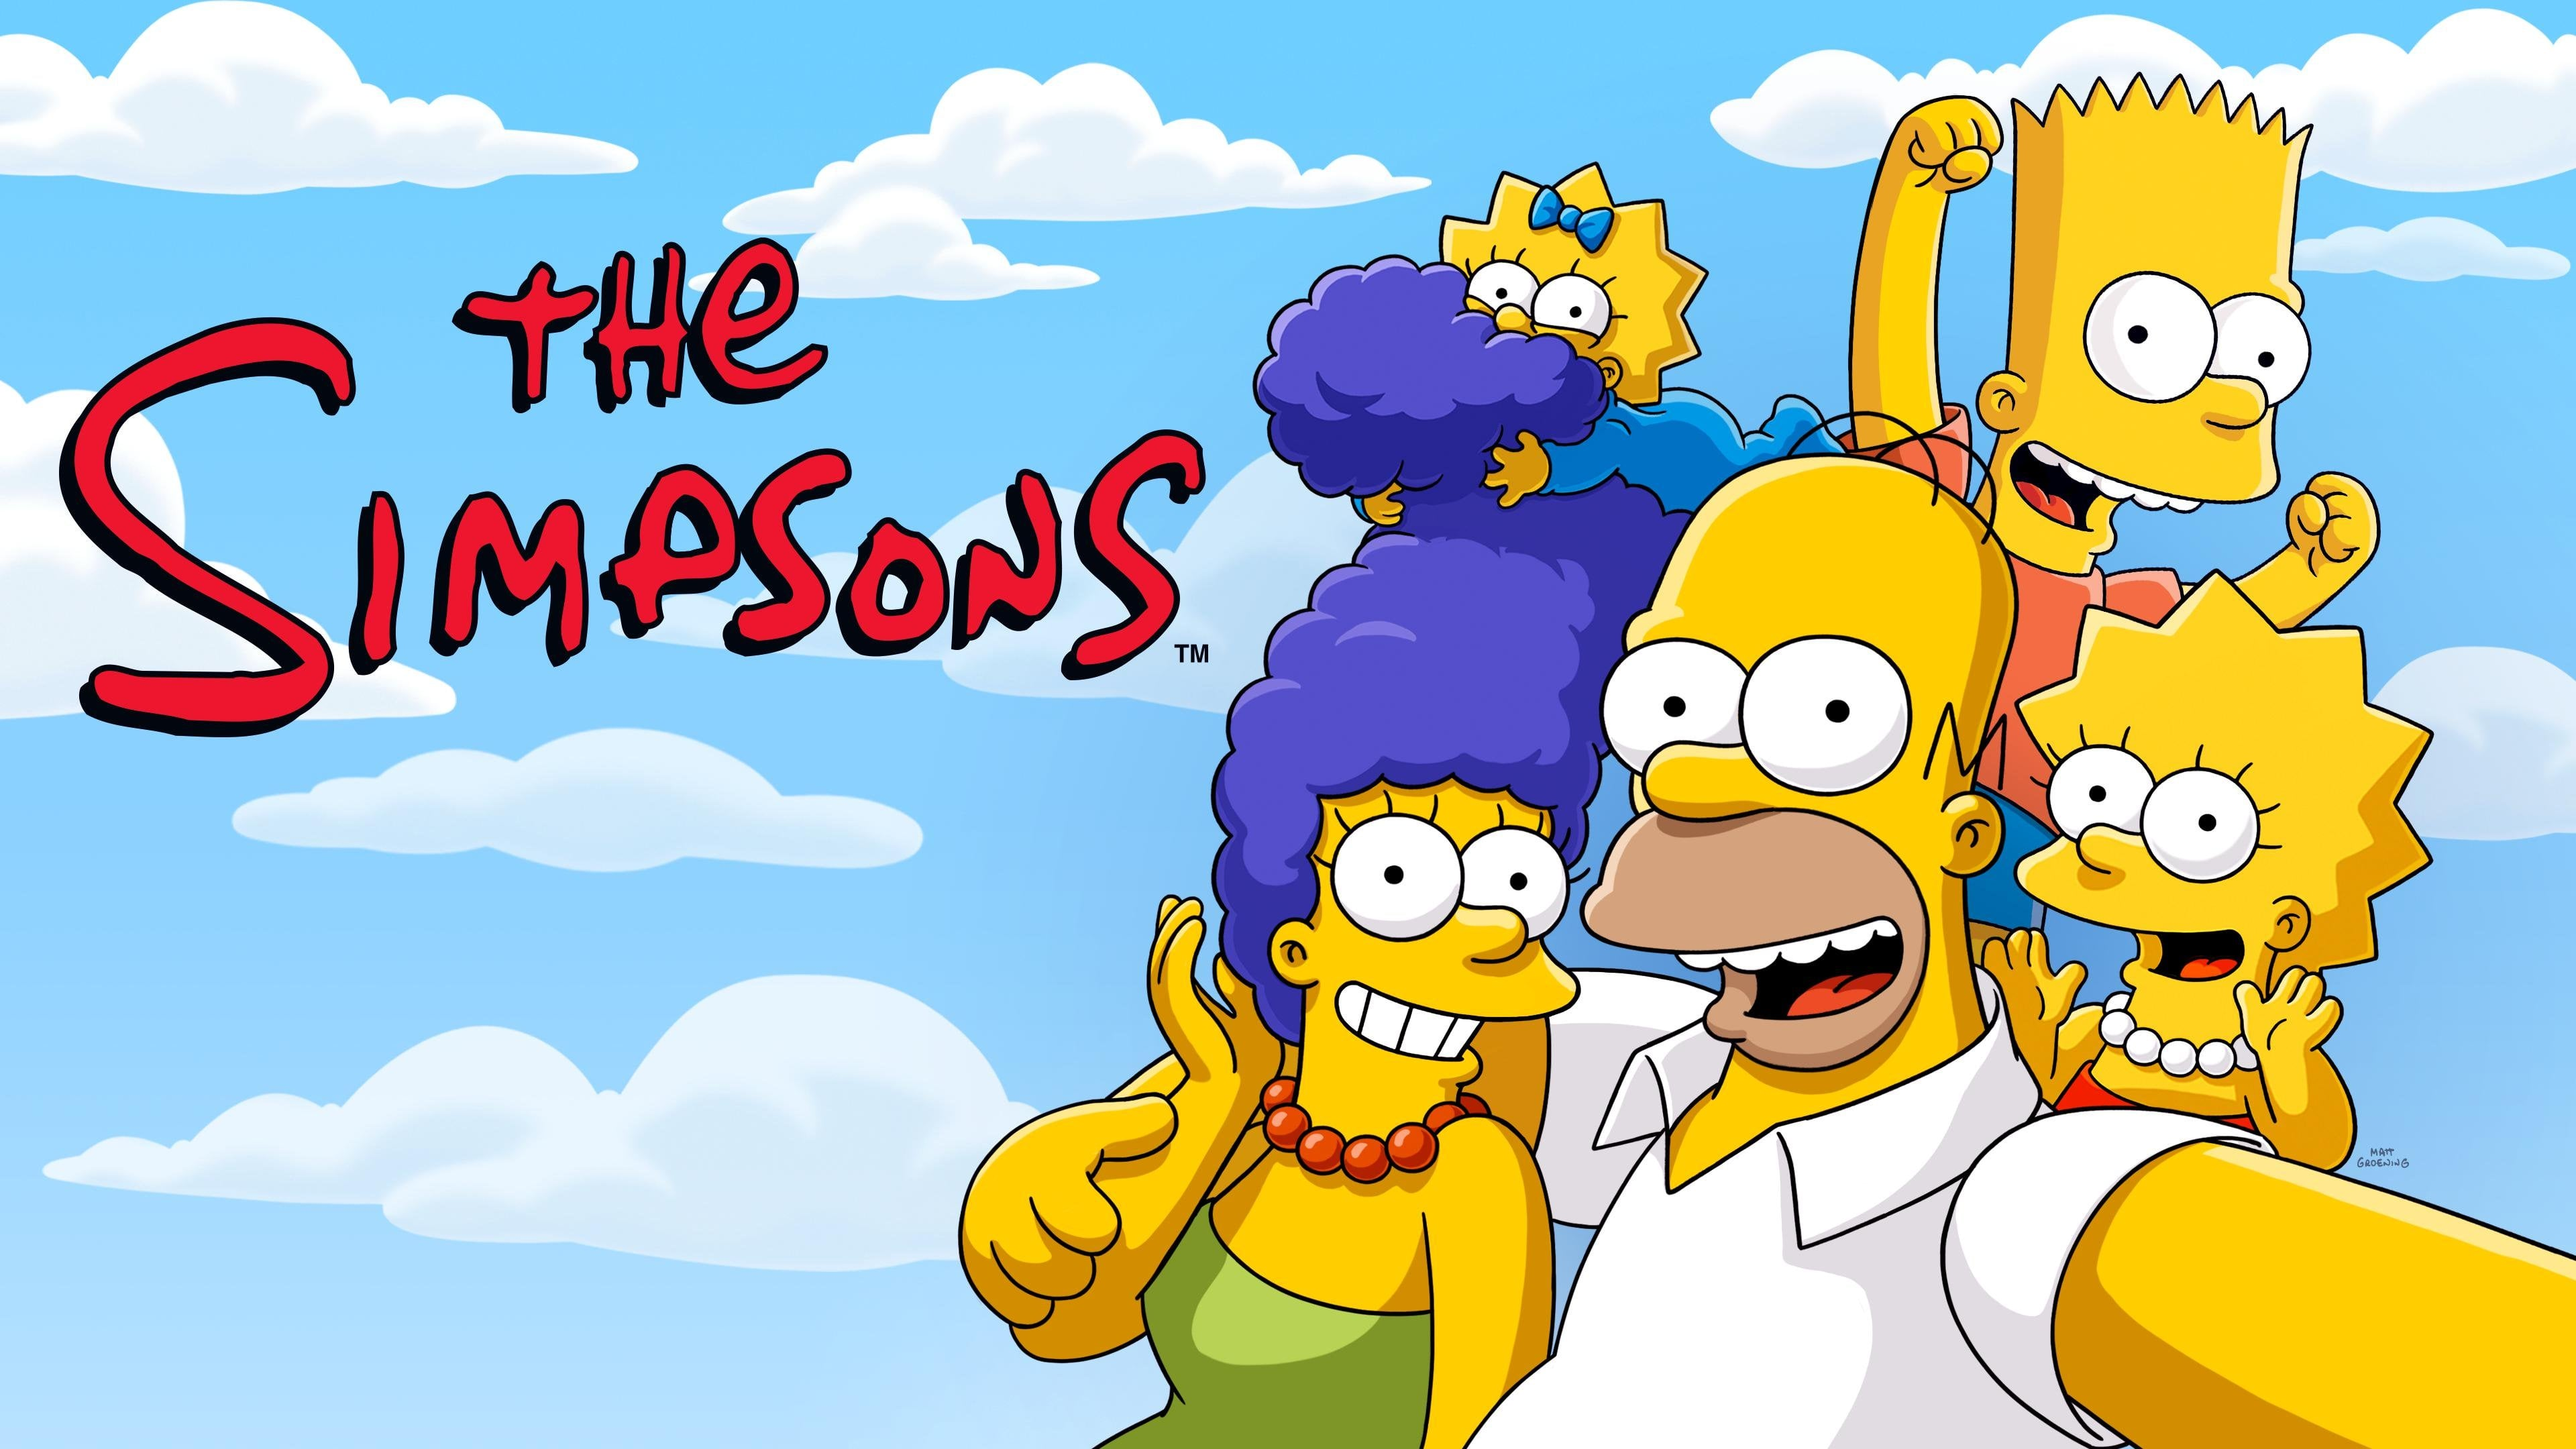 The Simpsons - Season 17 Episode 19 Girls Just Want to Have Sums